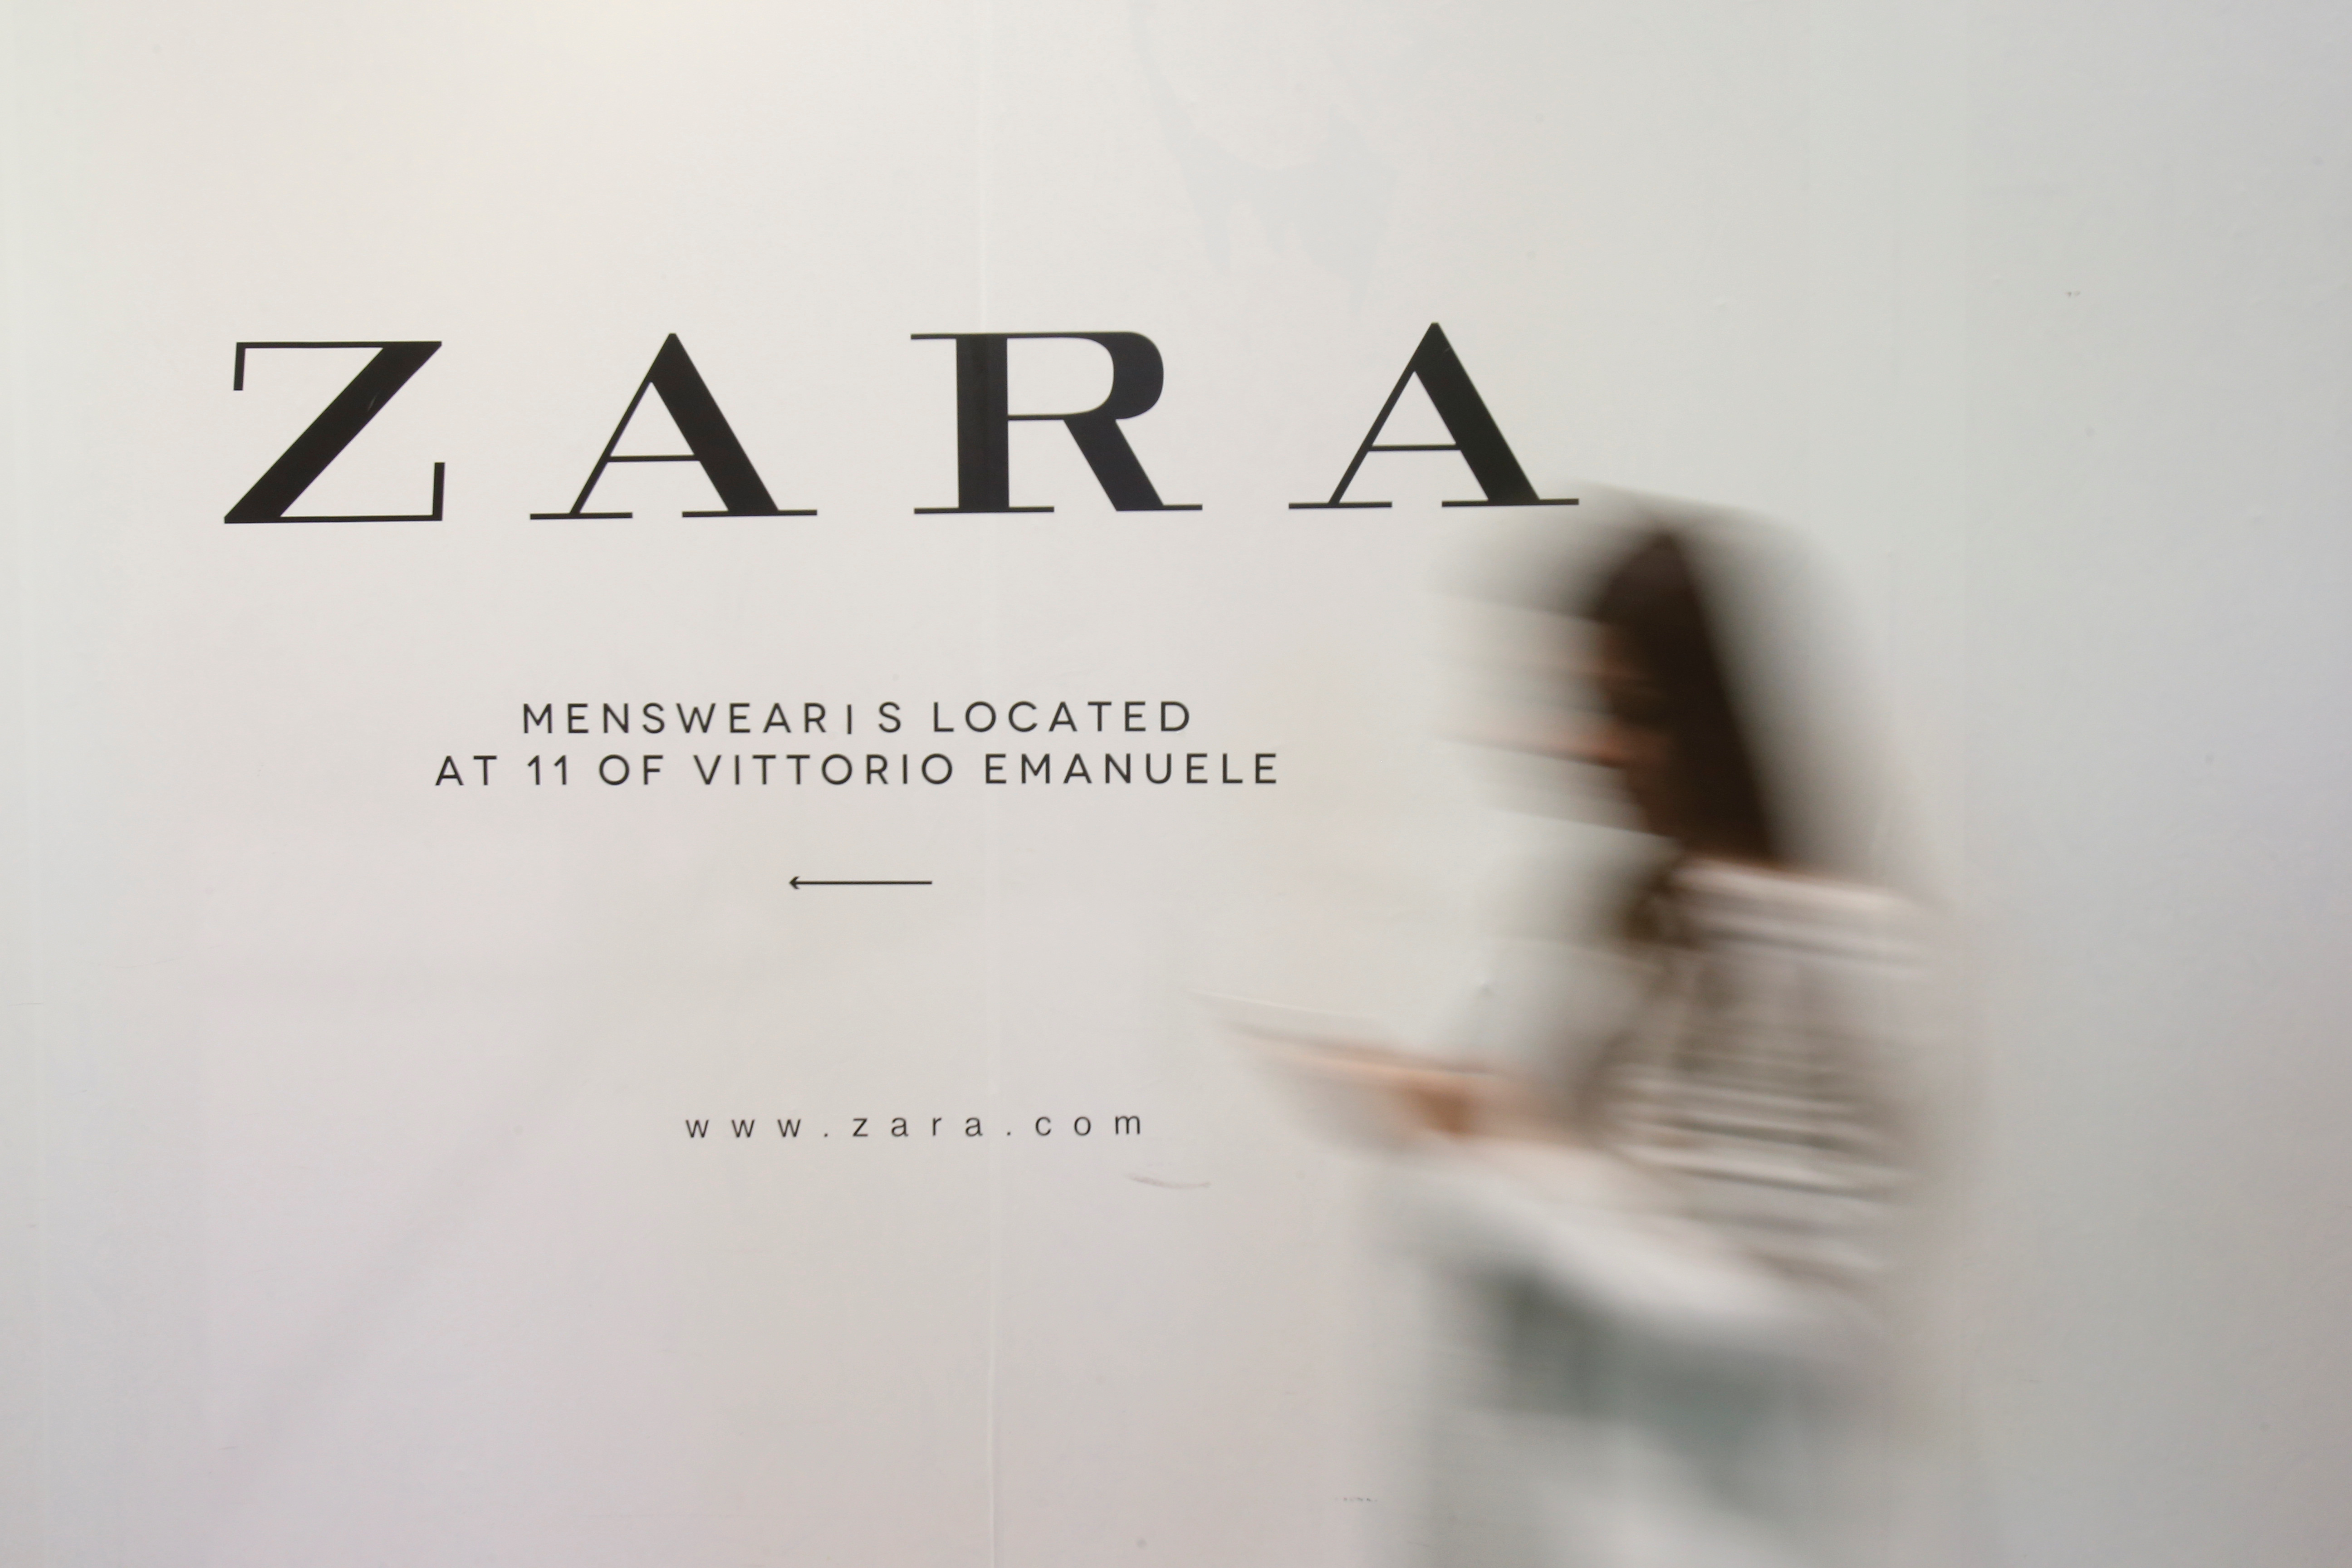 81727d0a0 Zara launches online sales in 106 new countries   The Star Online